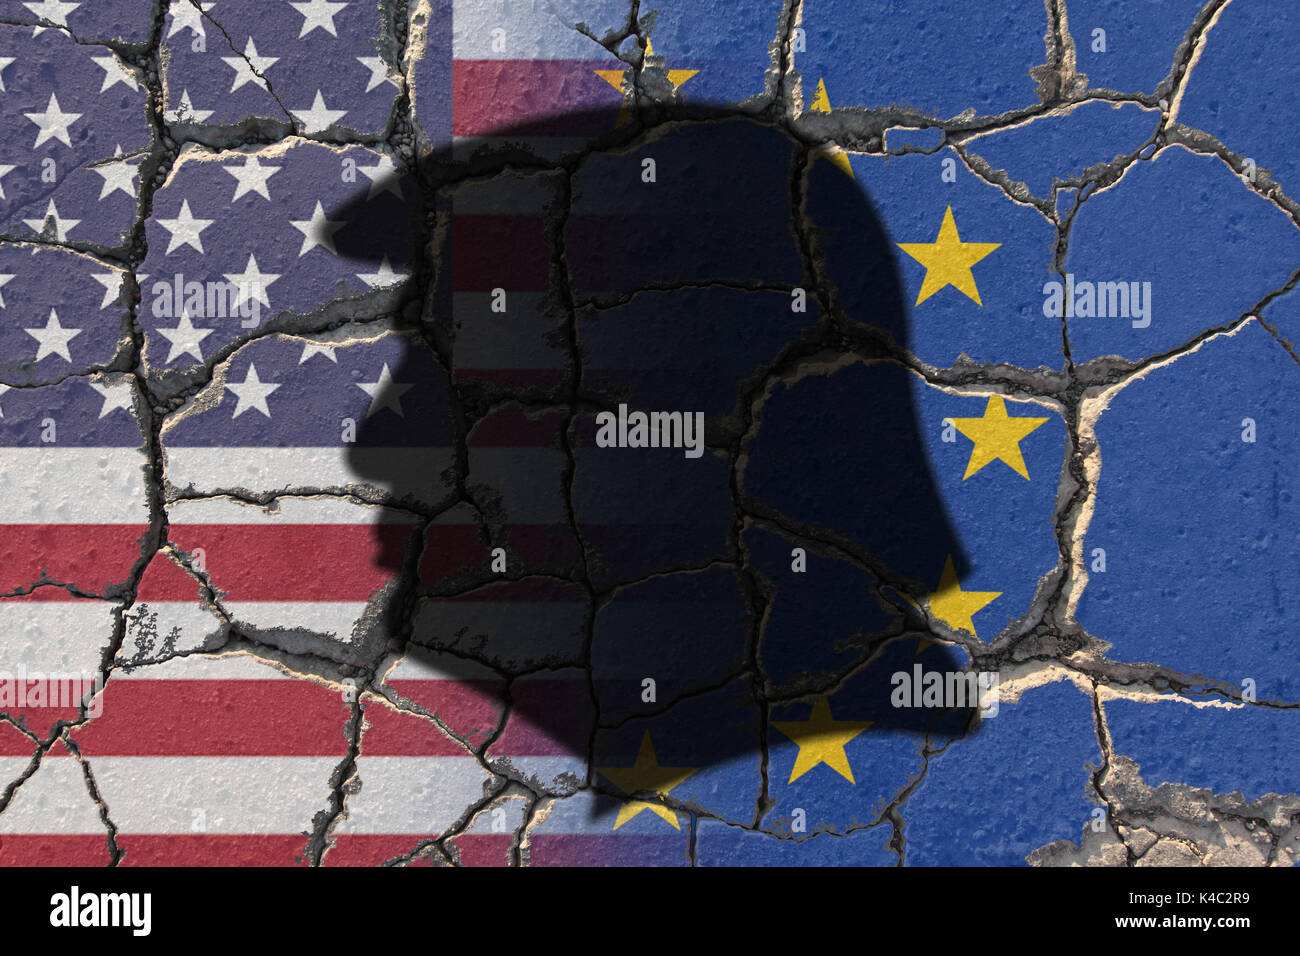 Silhouette Of Donald Trump With Flags Of Usa And Eu European Union On Eroding Ground Stock Photo